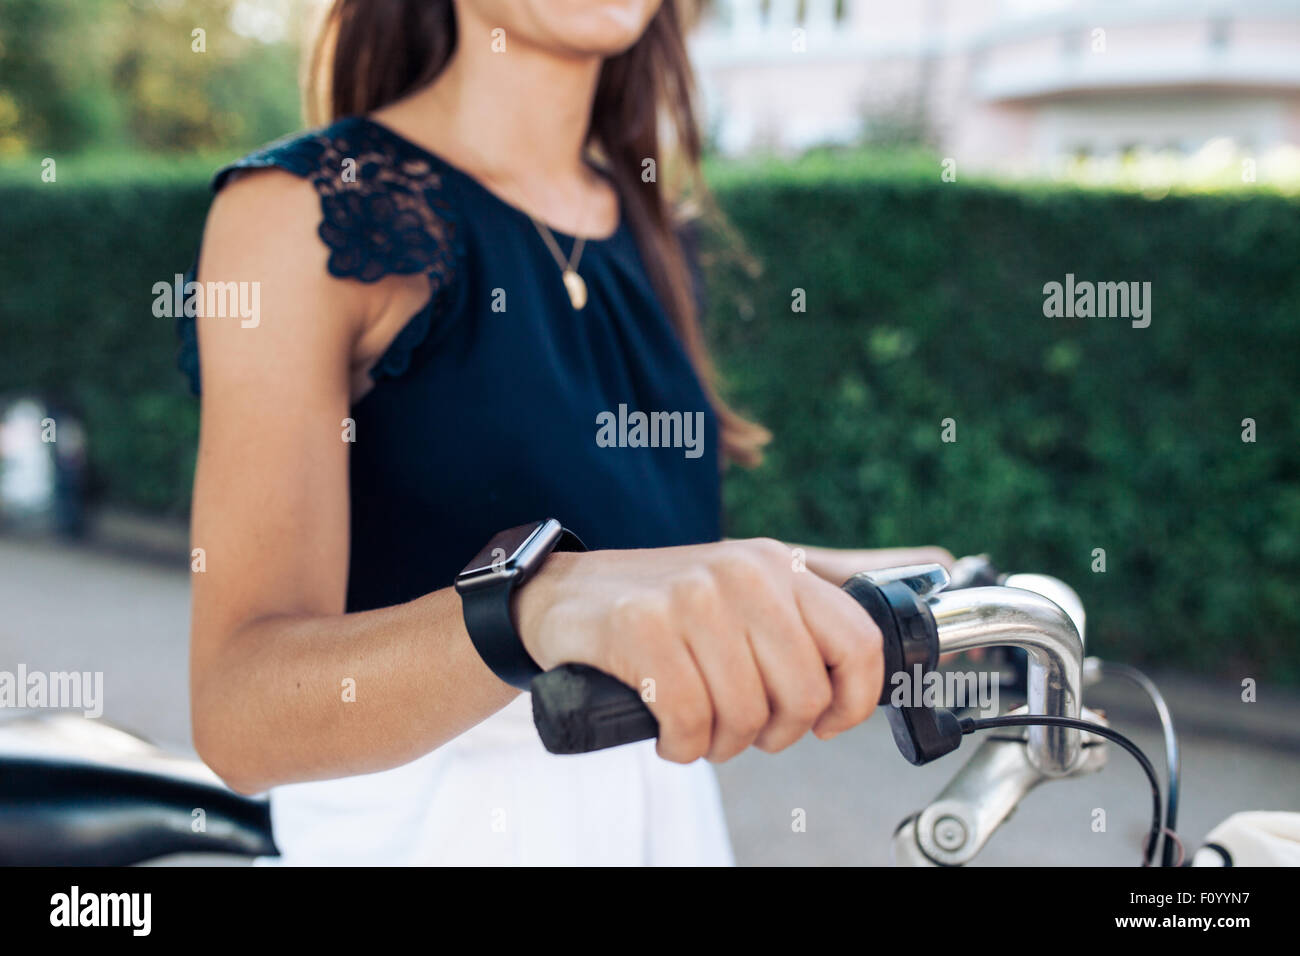 Woman riding a bike with a smartwatch. Female wearing smart watch while cycling. - Stock Image